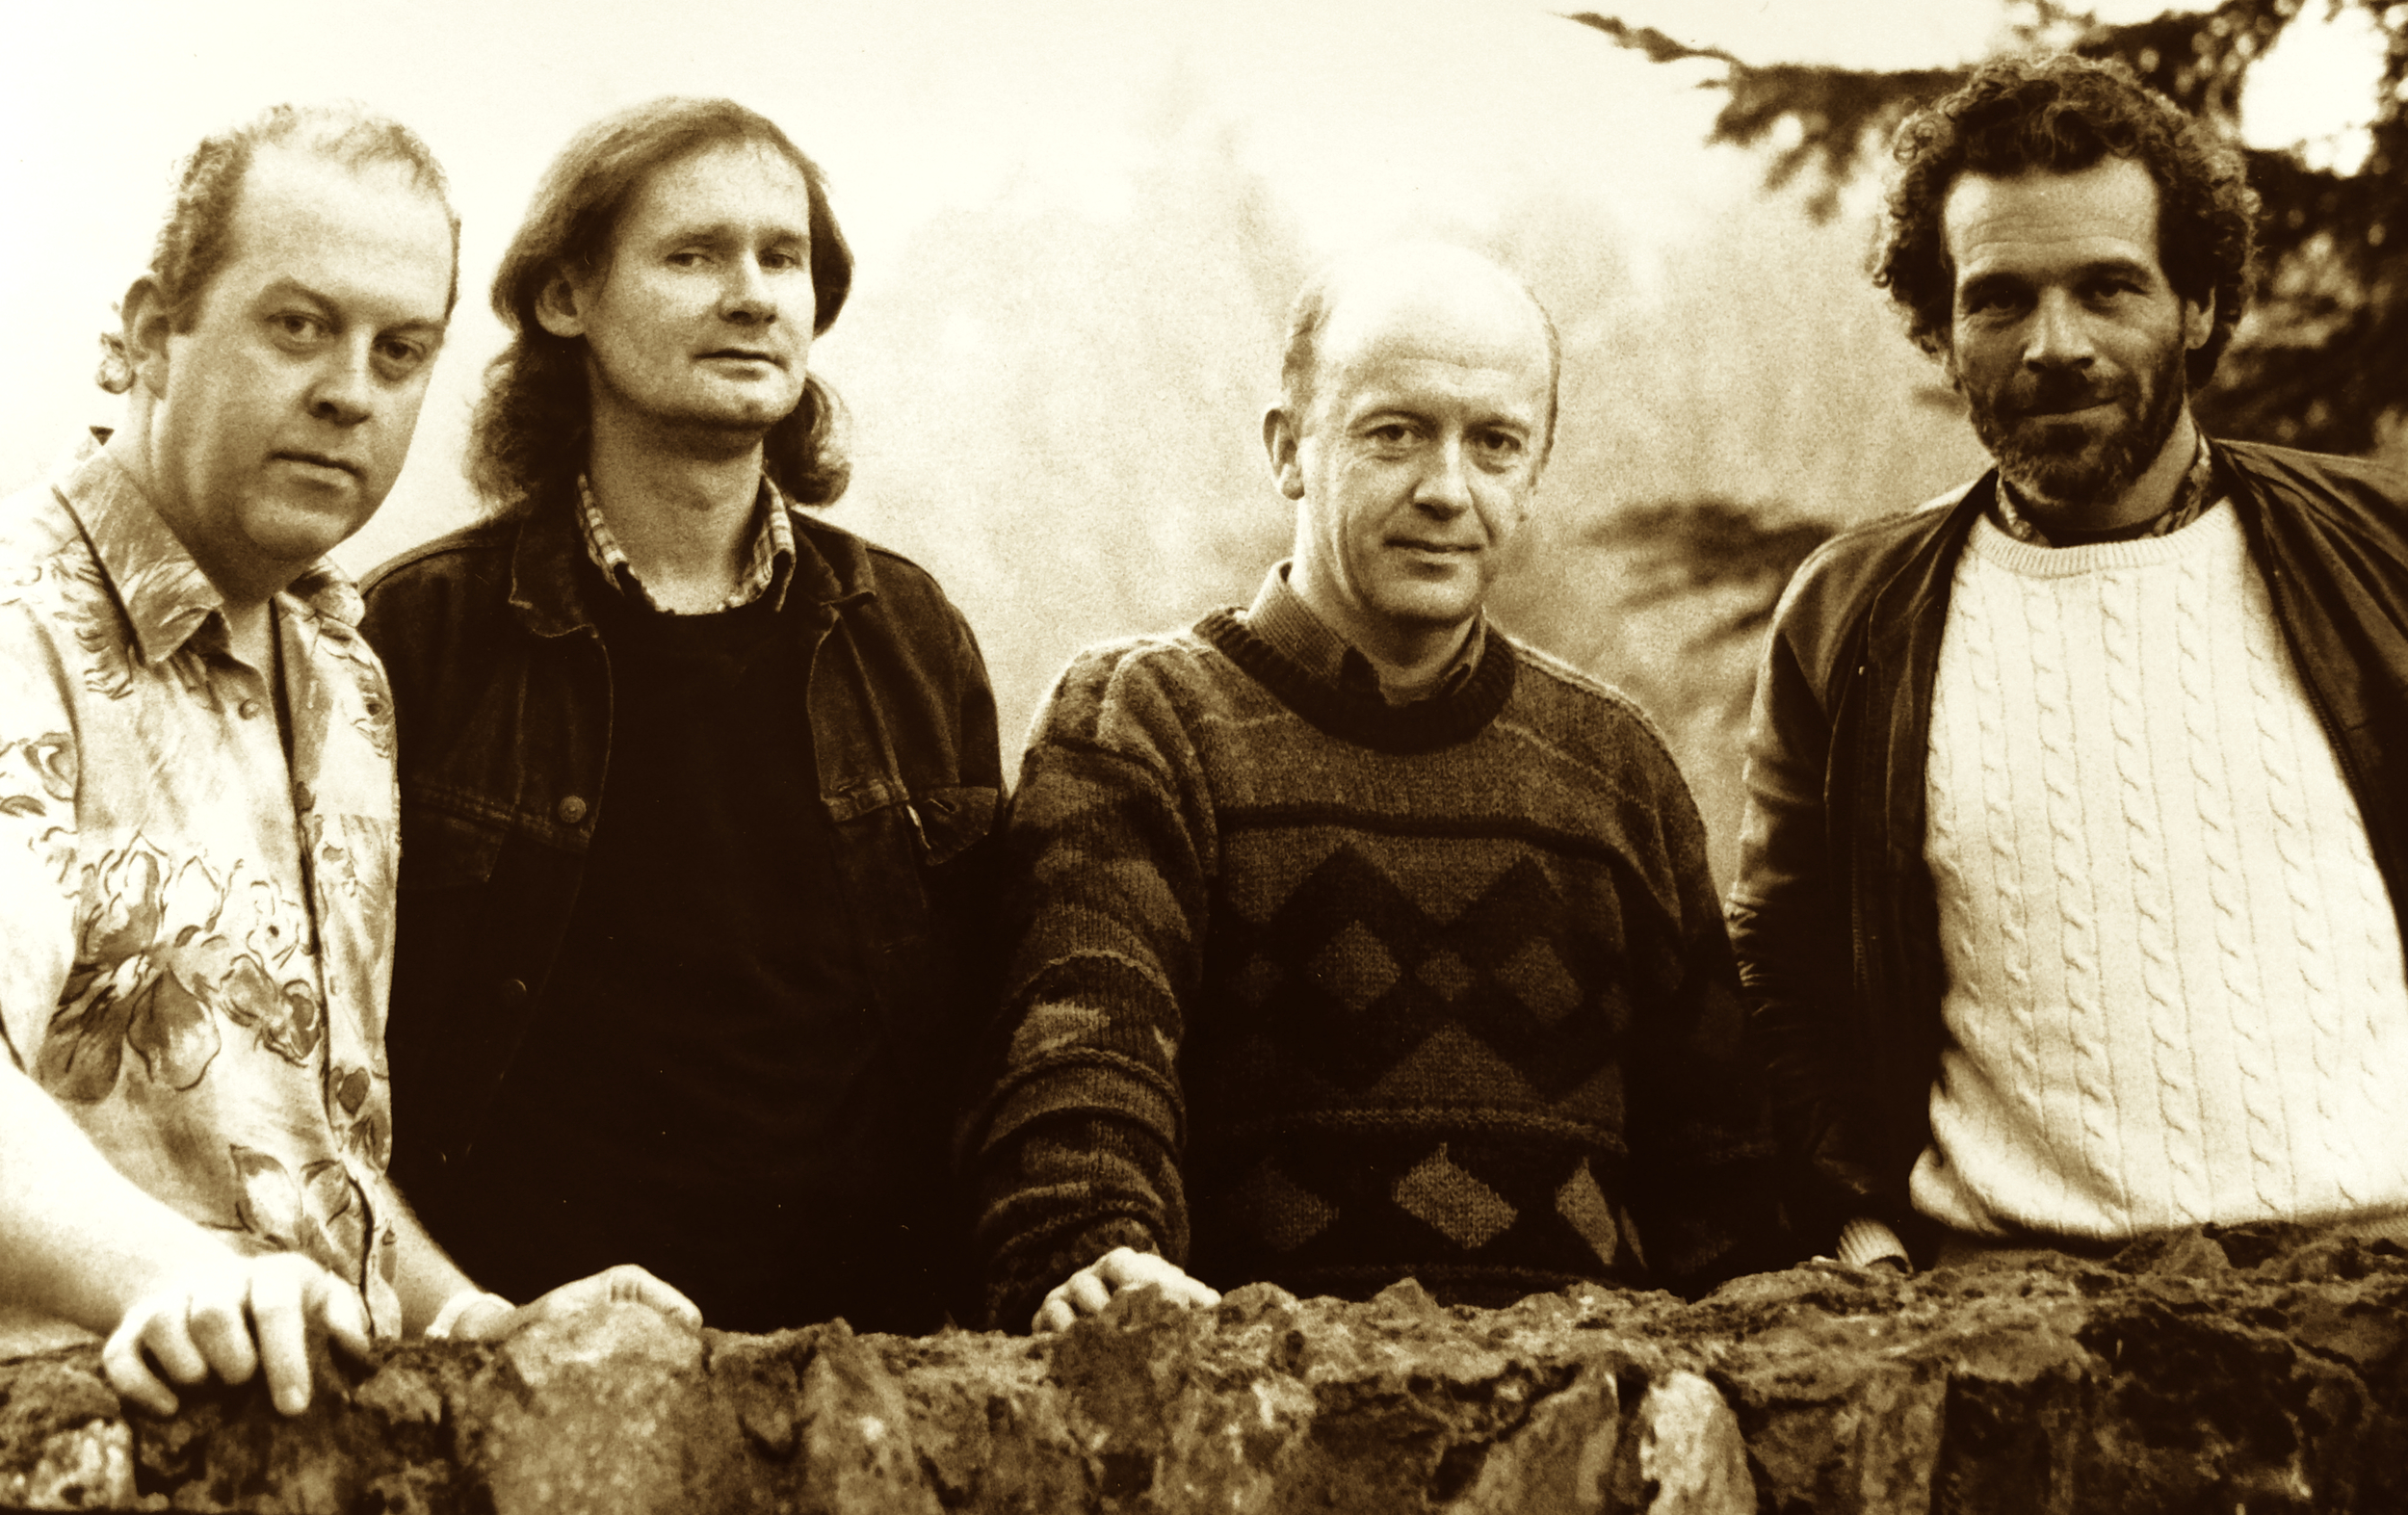 """One from the archives - Buttons & Bows, taken in 1991 during the recording of their third album, """"Gracenotes""""."""